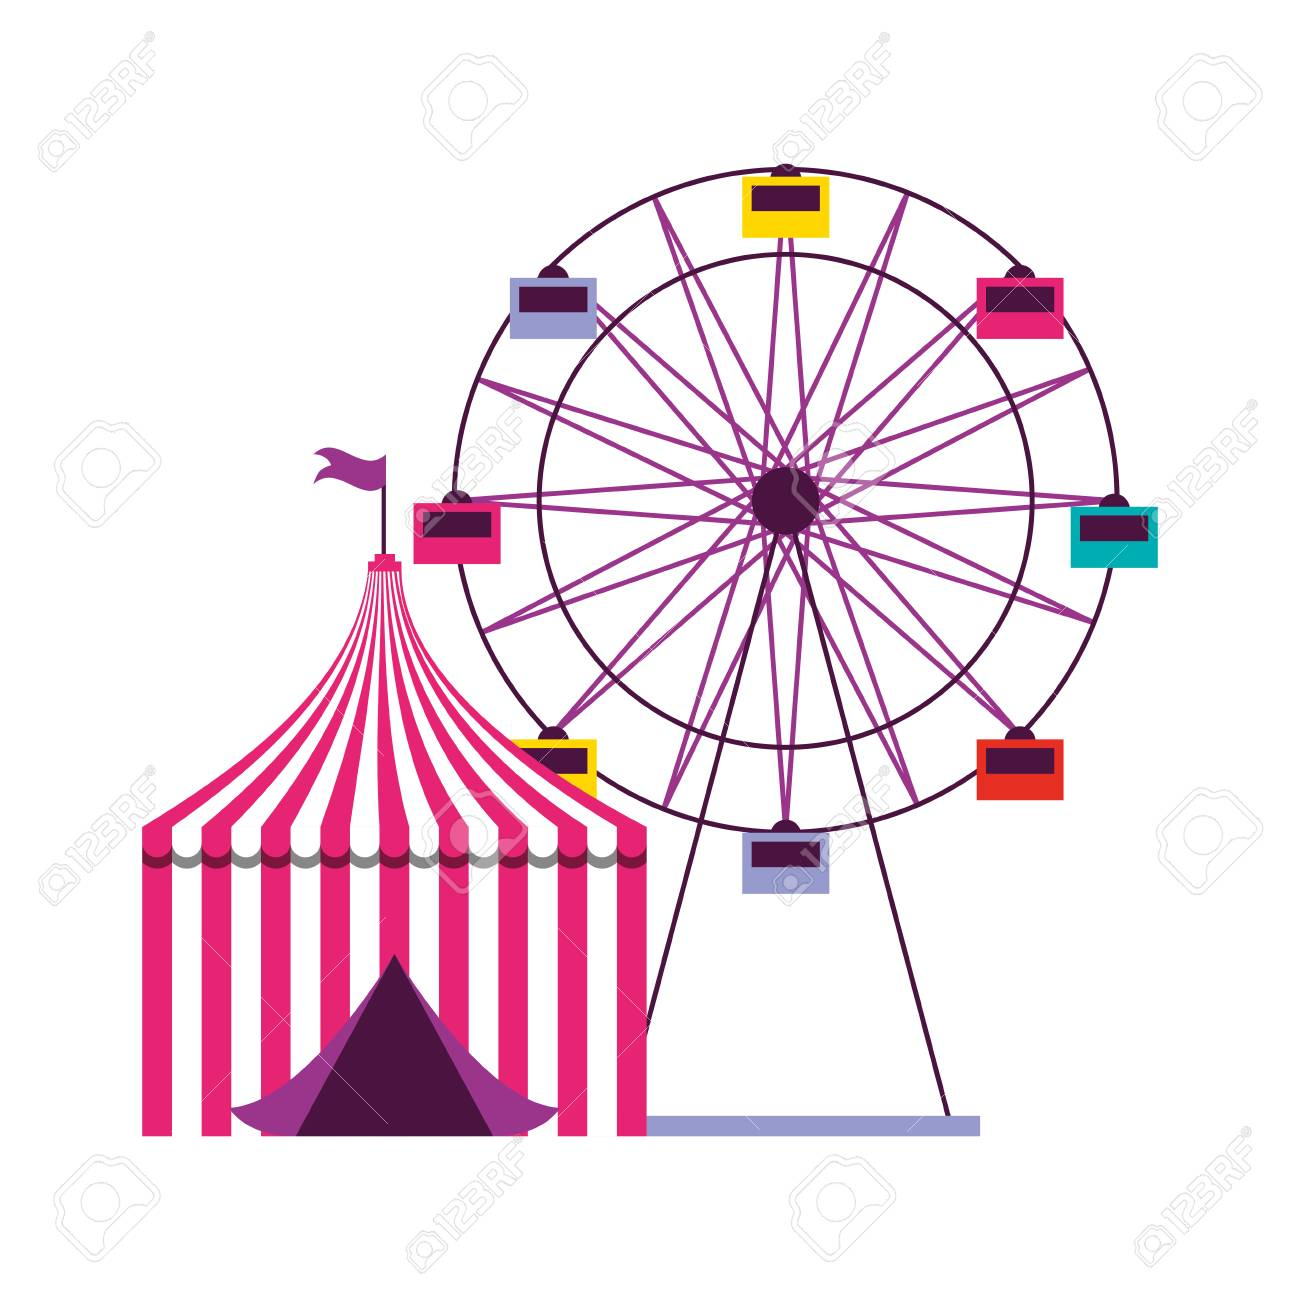 ferris wheel and tent circus carnival vector illustration.